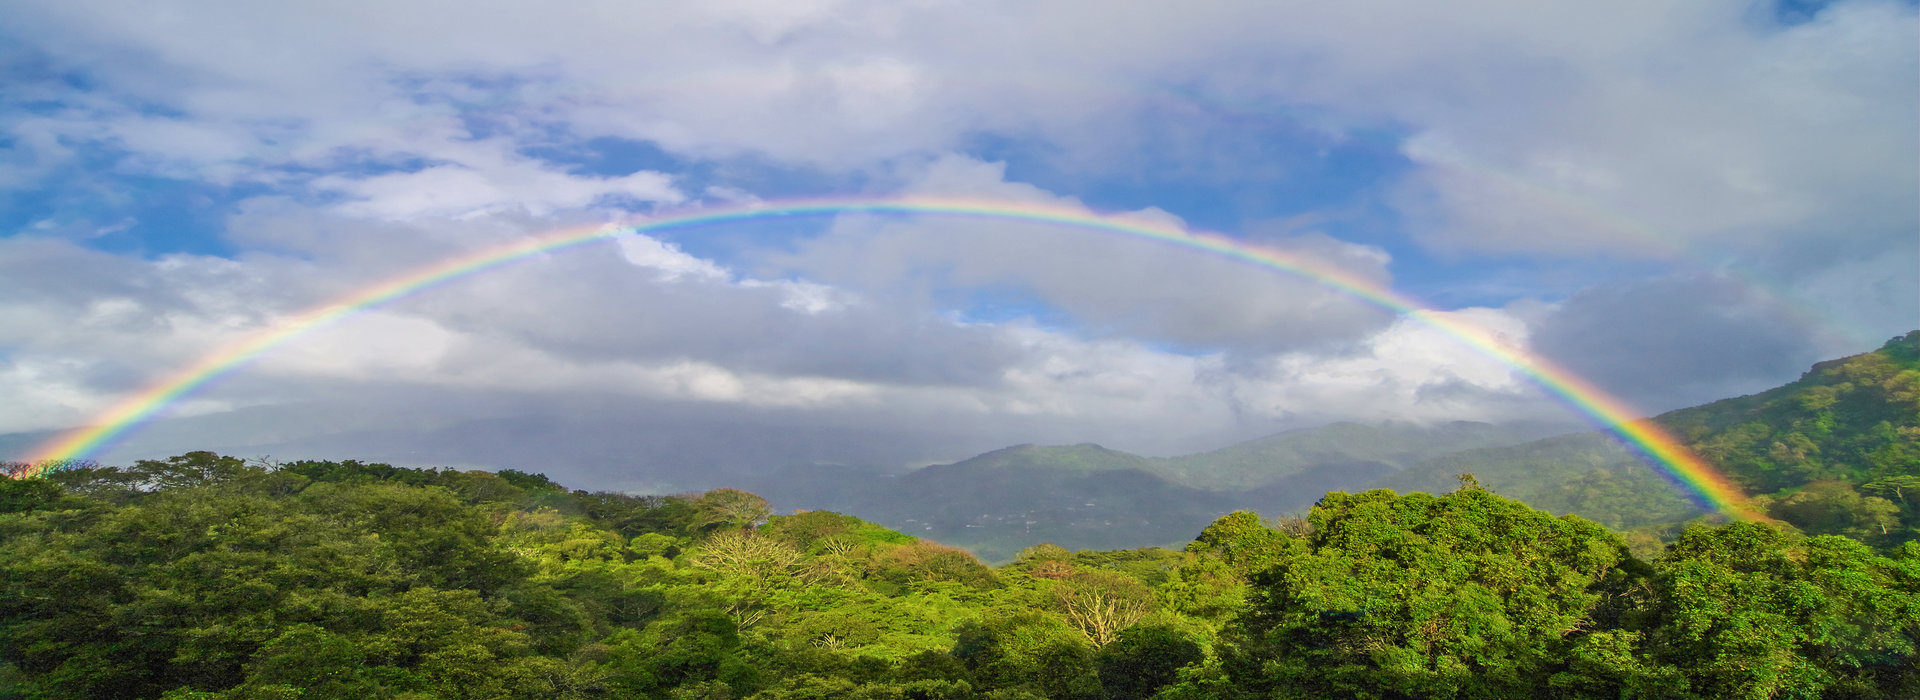 double_rainbow_clouds_and_tropical_forest_background_in_boquete_panama